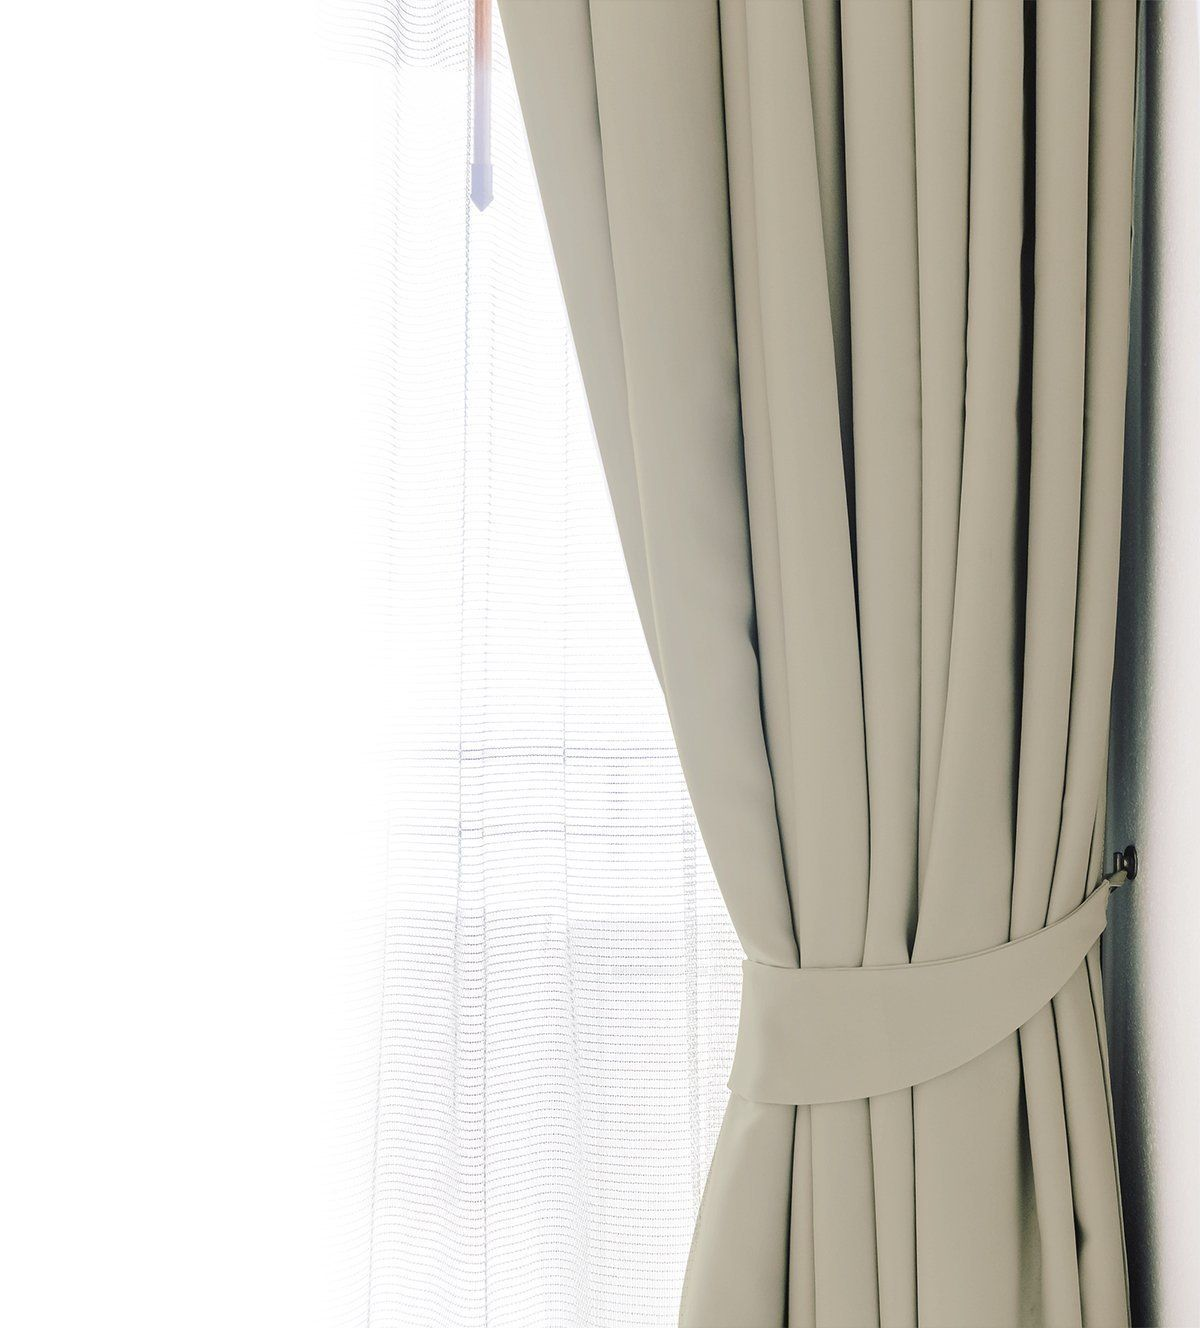 7 Of The Best Blackout Curtains On Amazon According To Reviewers Huffpost Life